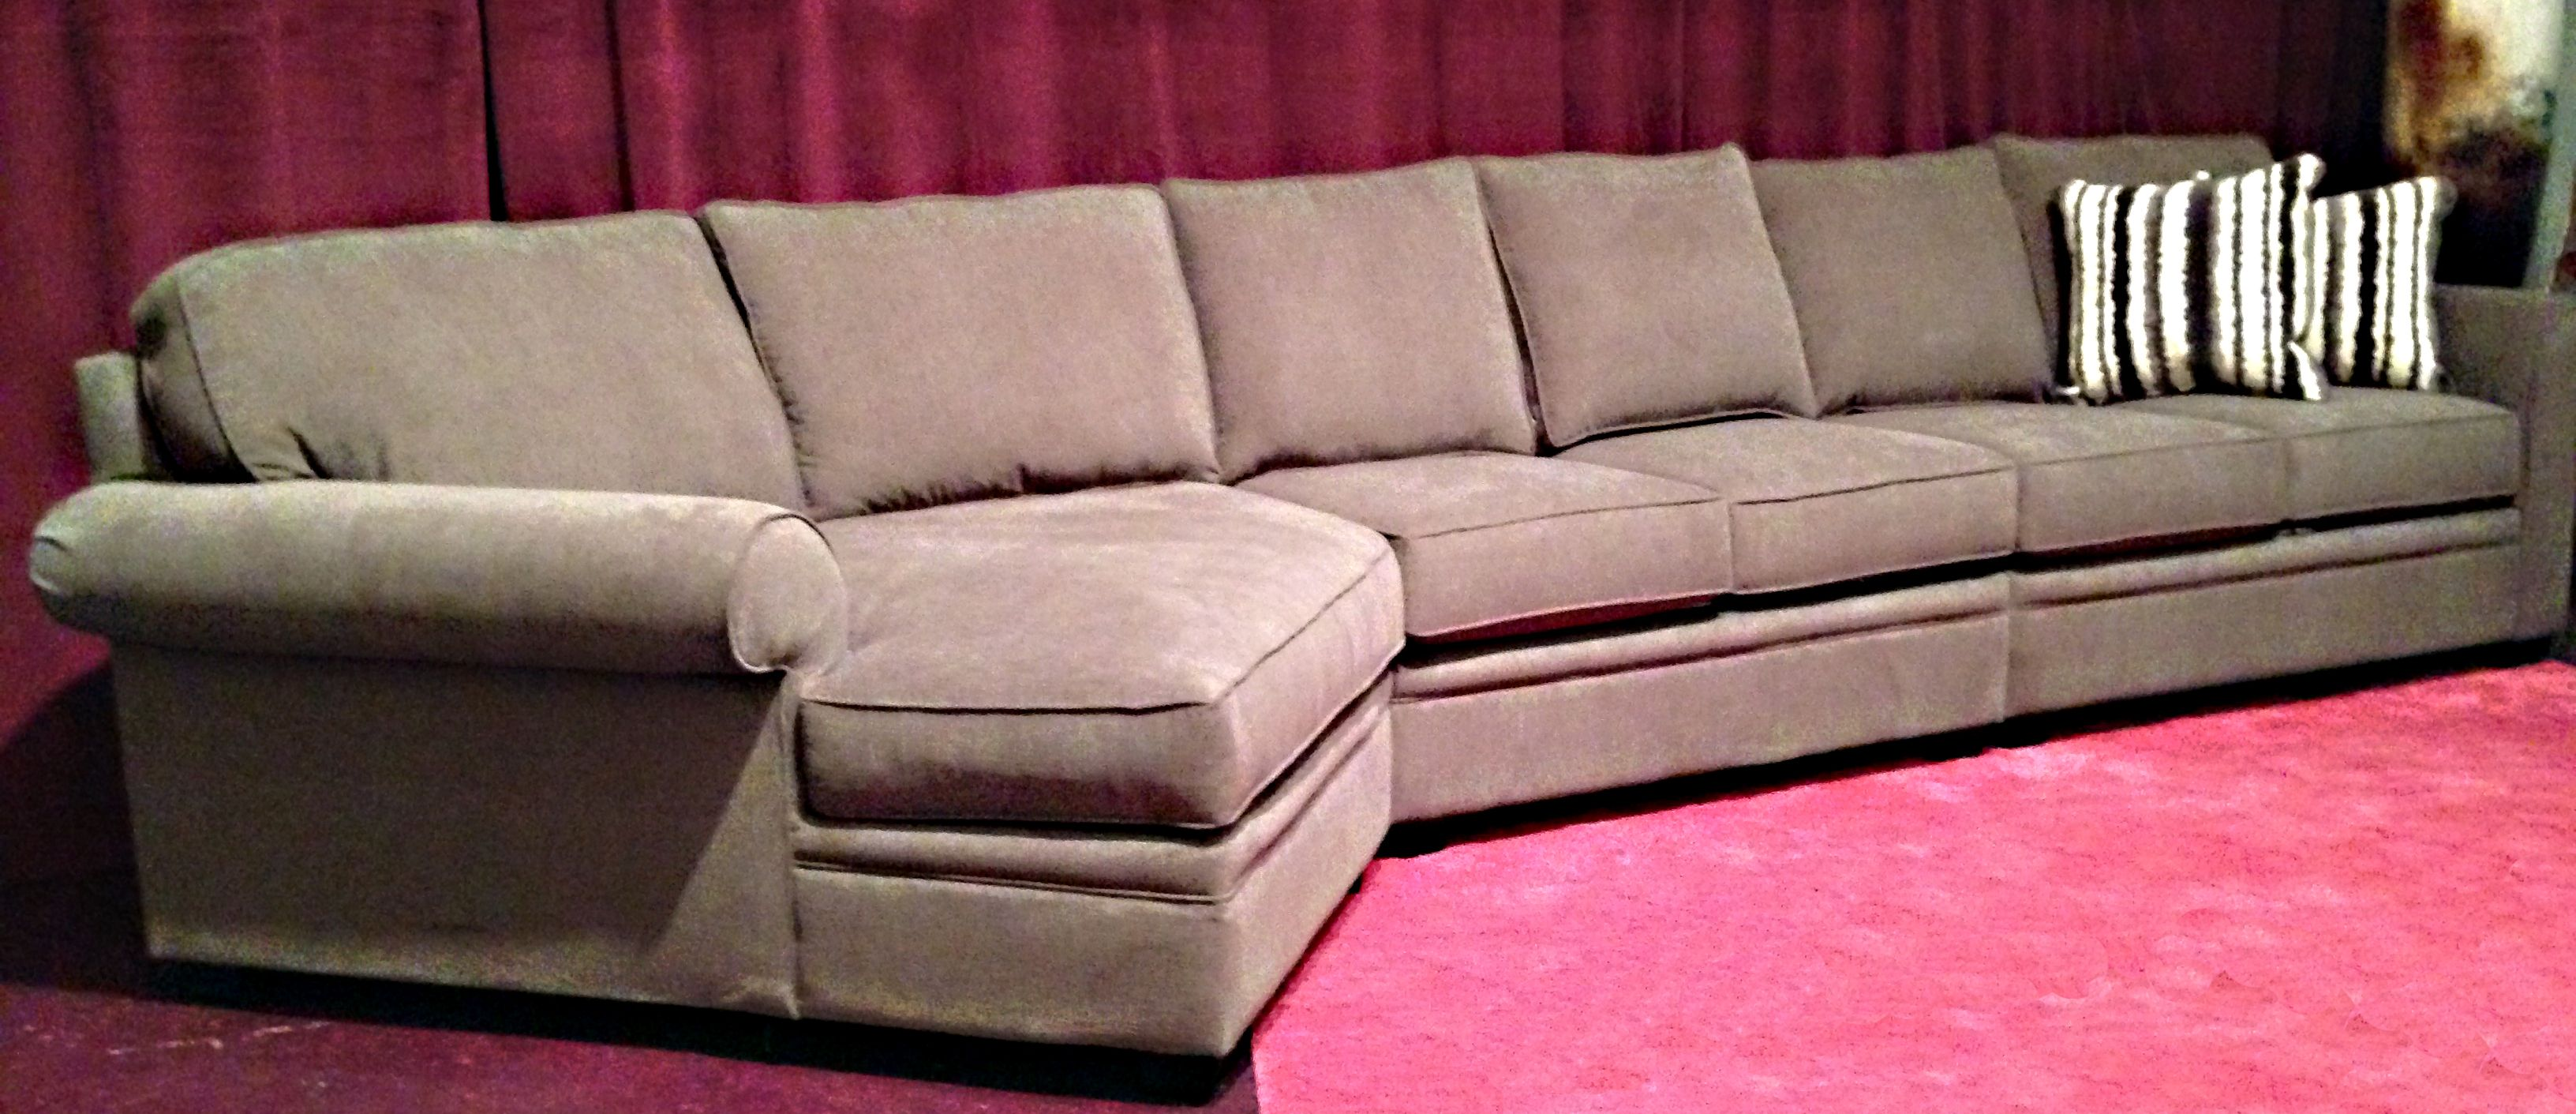 Saskatoon Furniture The BERKLEY sectional has an amazing cuddle